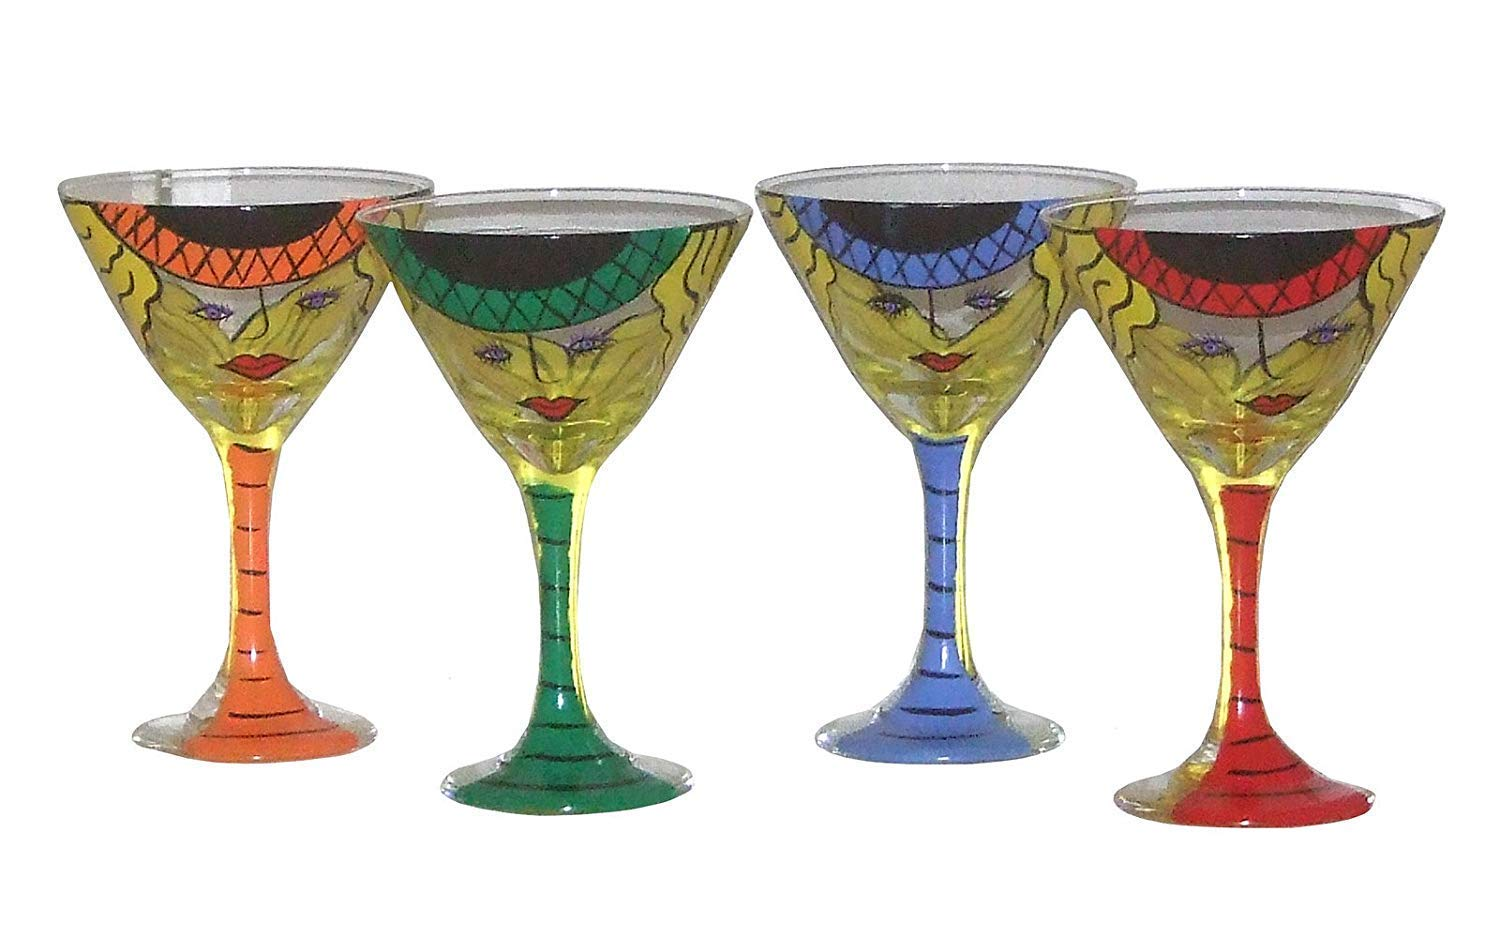 Set of mart Year-end gift 2 Whimsical Martini Glasses Bright H in Assortment. Color